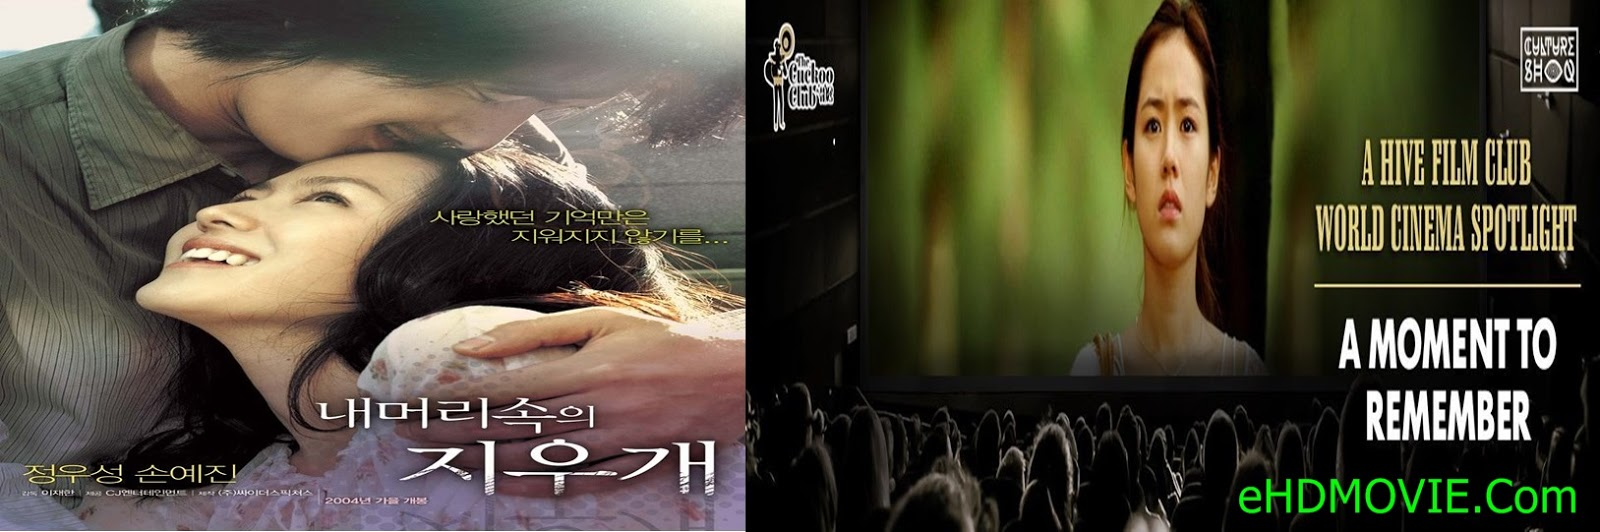 A Moment to Remember 2004 Full Movie Korean 720p - 480p ORG BRRip 500MB - 1.2GB ESubs Free Download